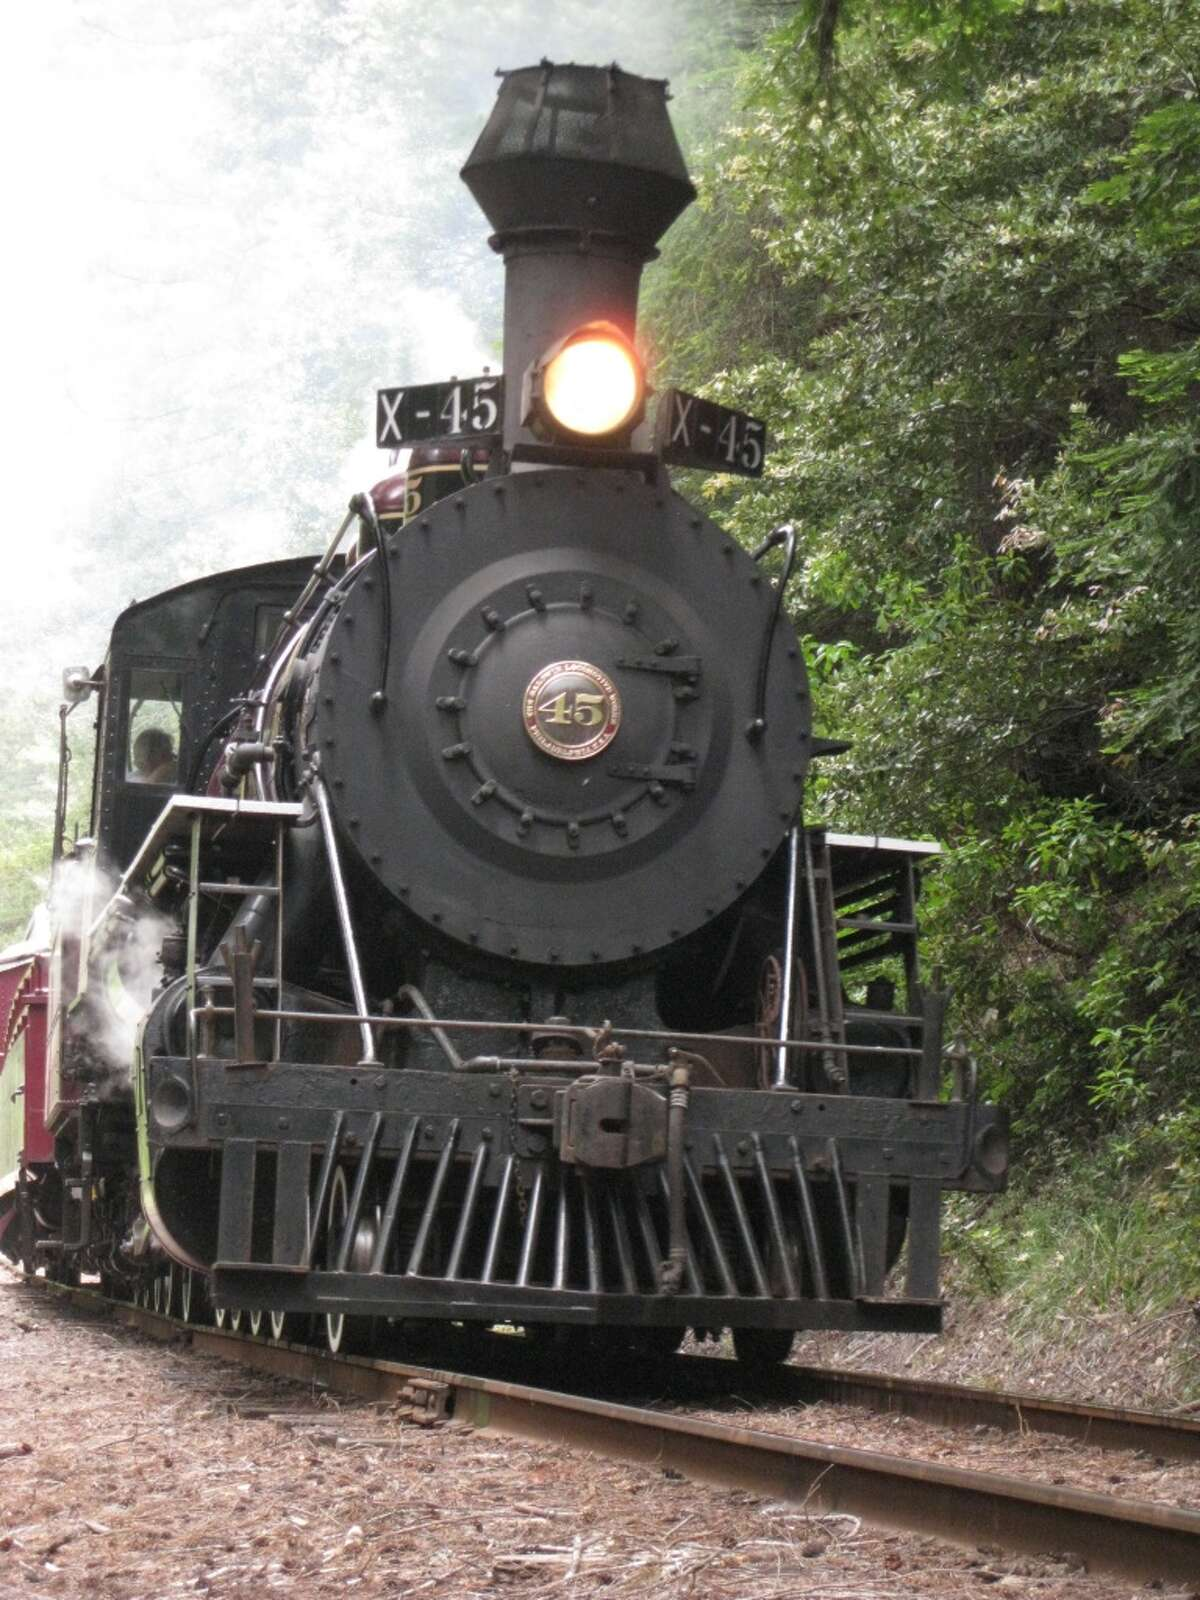 Engine #45 of the Skunk Train - a 1924 Baldwin 2-8-2 Mikado Steam Locomotive - rounds the corner at Alpine (a spot Jack London visited several times) carrying passengers to Northspur.